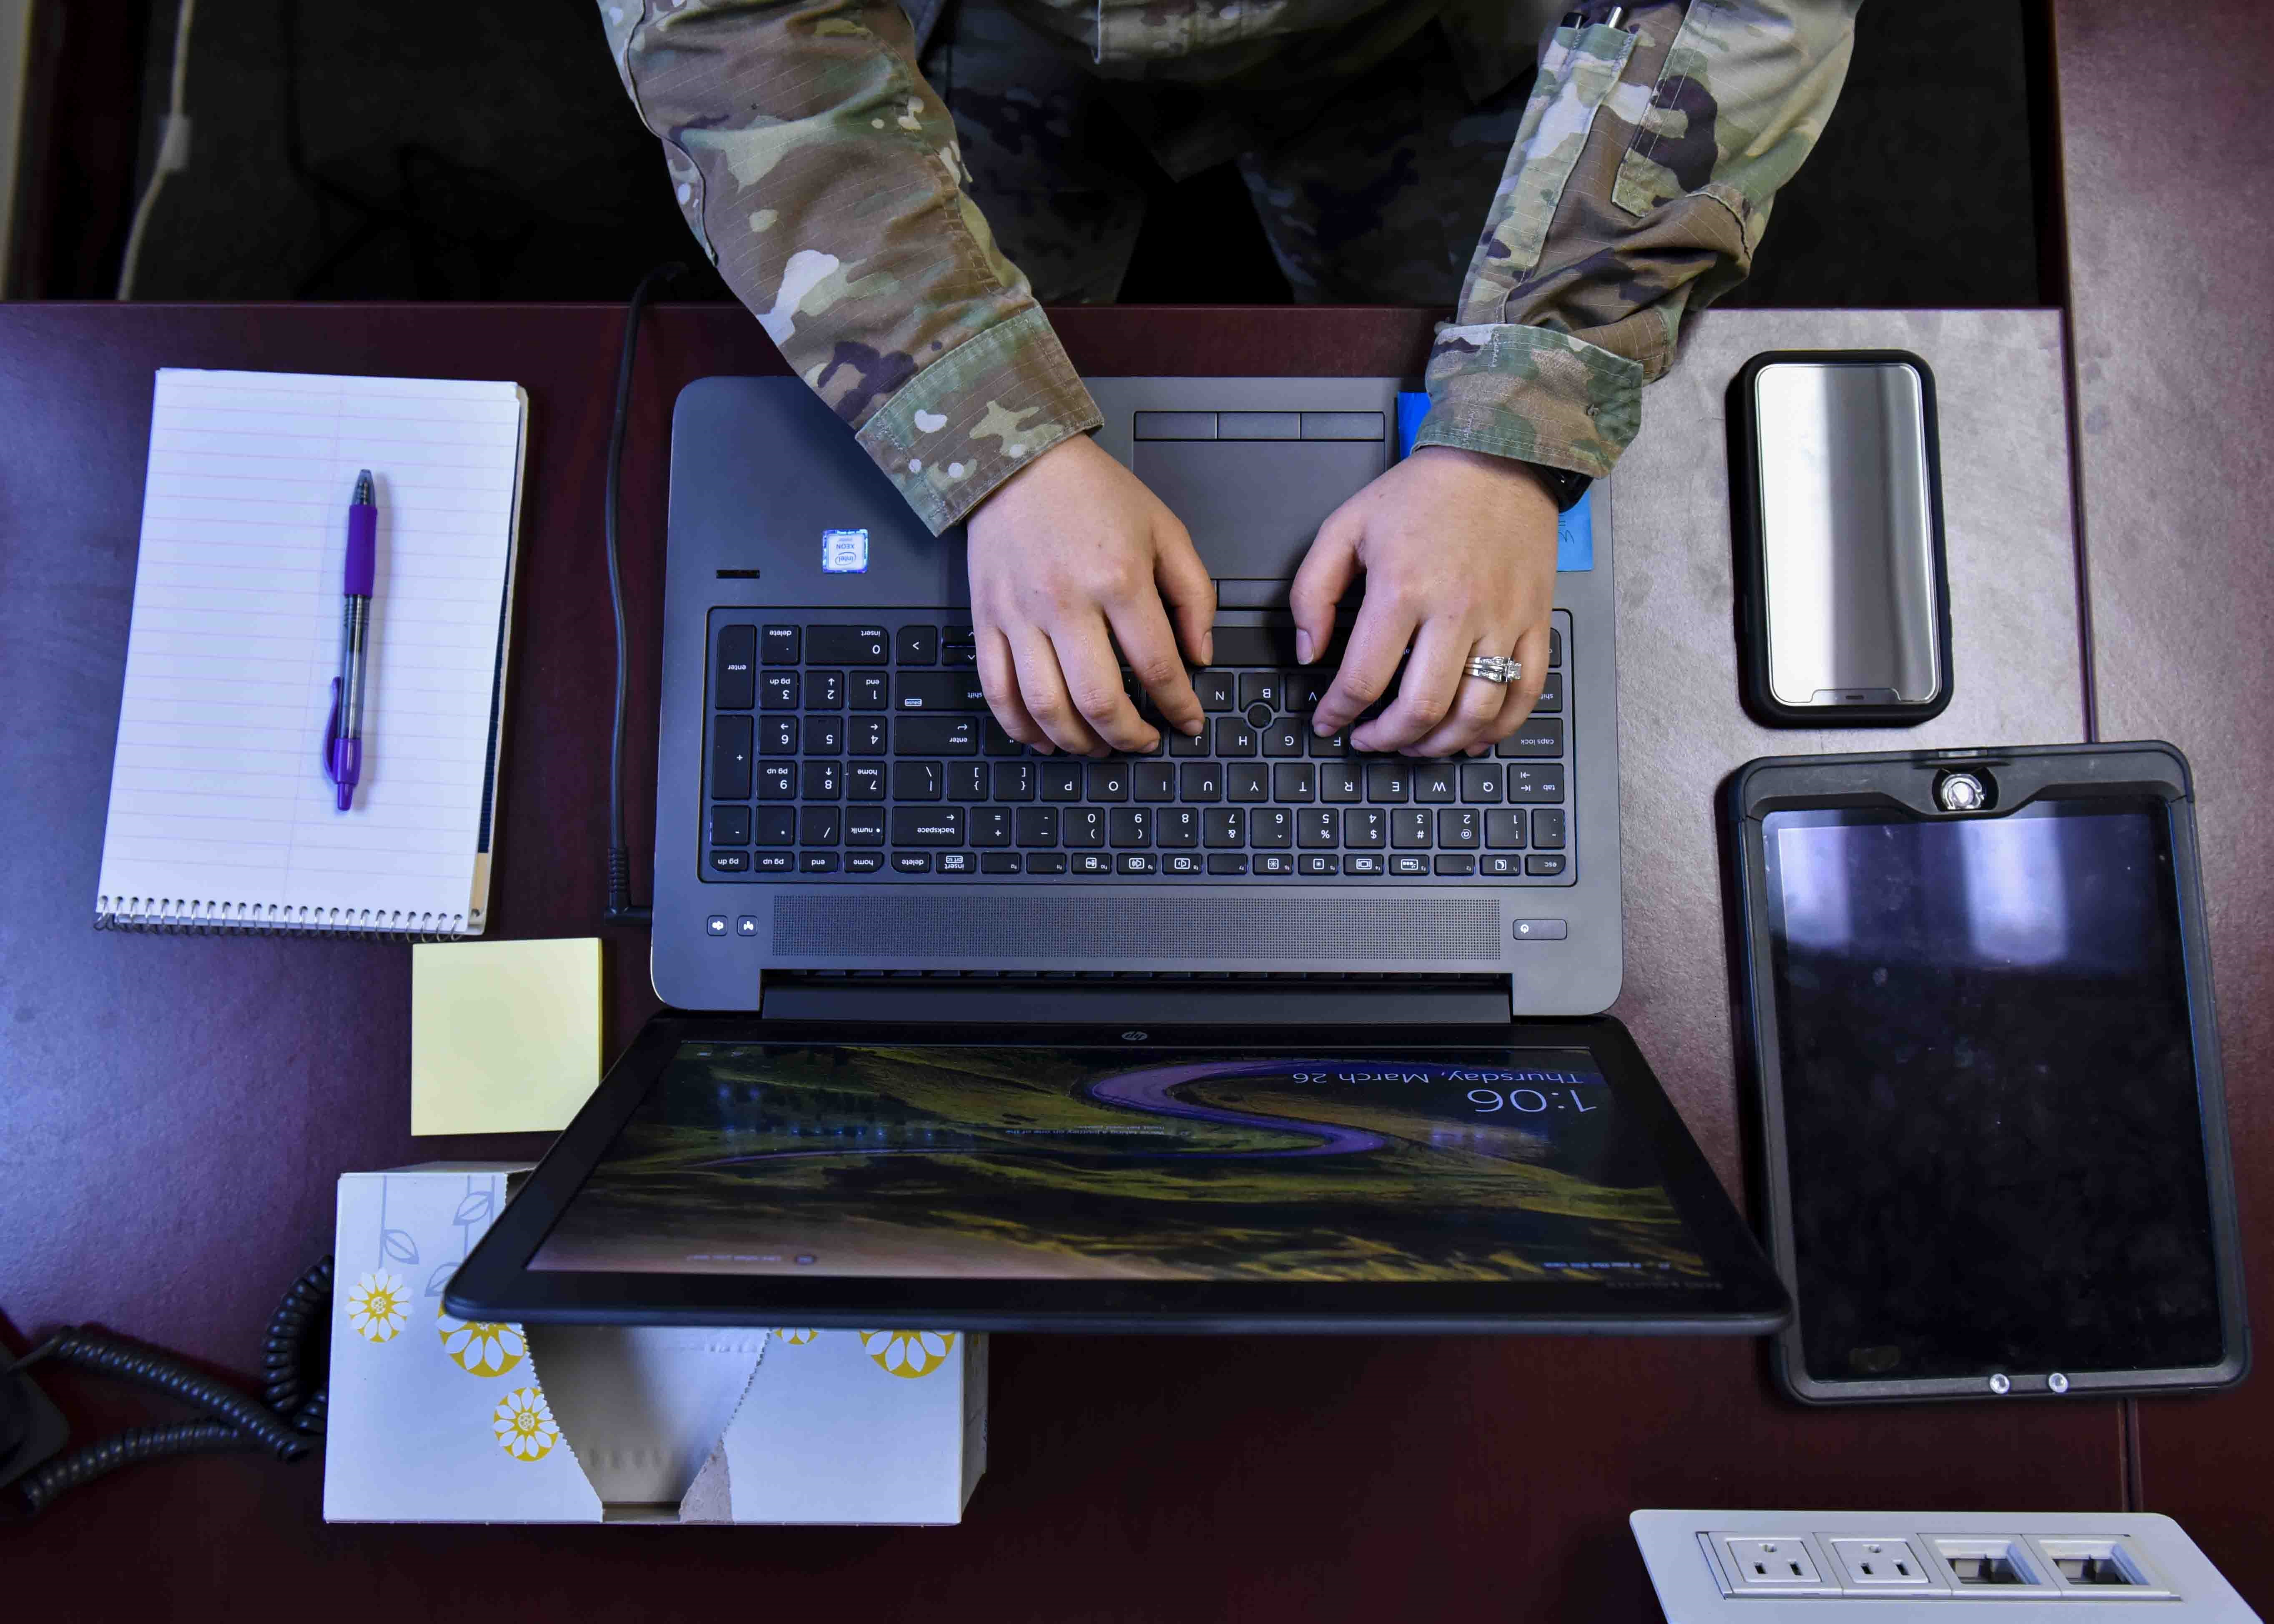 The Commercial Virtual Remote Environment allows users to access versions of Microsoft Teams, SharePoint online, OneDrive and Skype without a virtual private network connection. (Airman 1st Class Kiaundra Miller/U.S. Air Force)